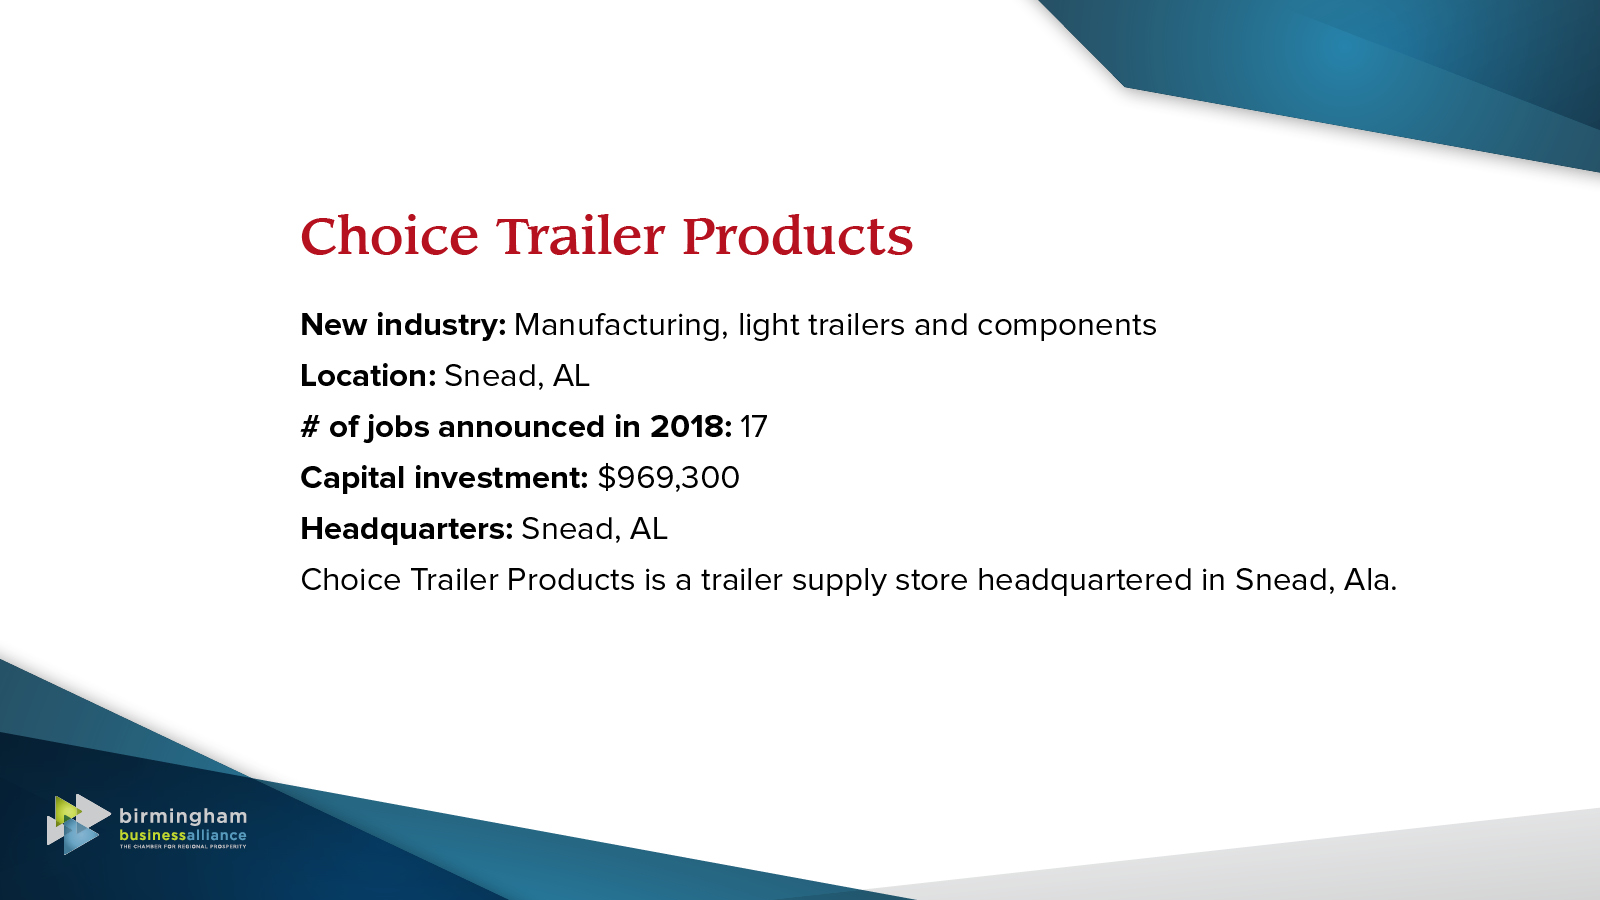 14) Choice Trailer Products